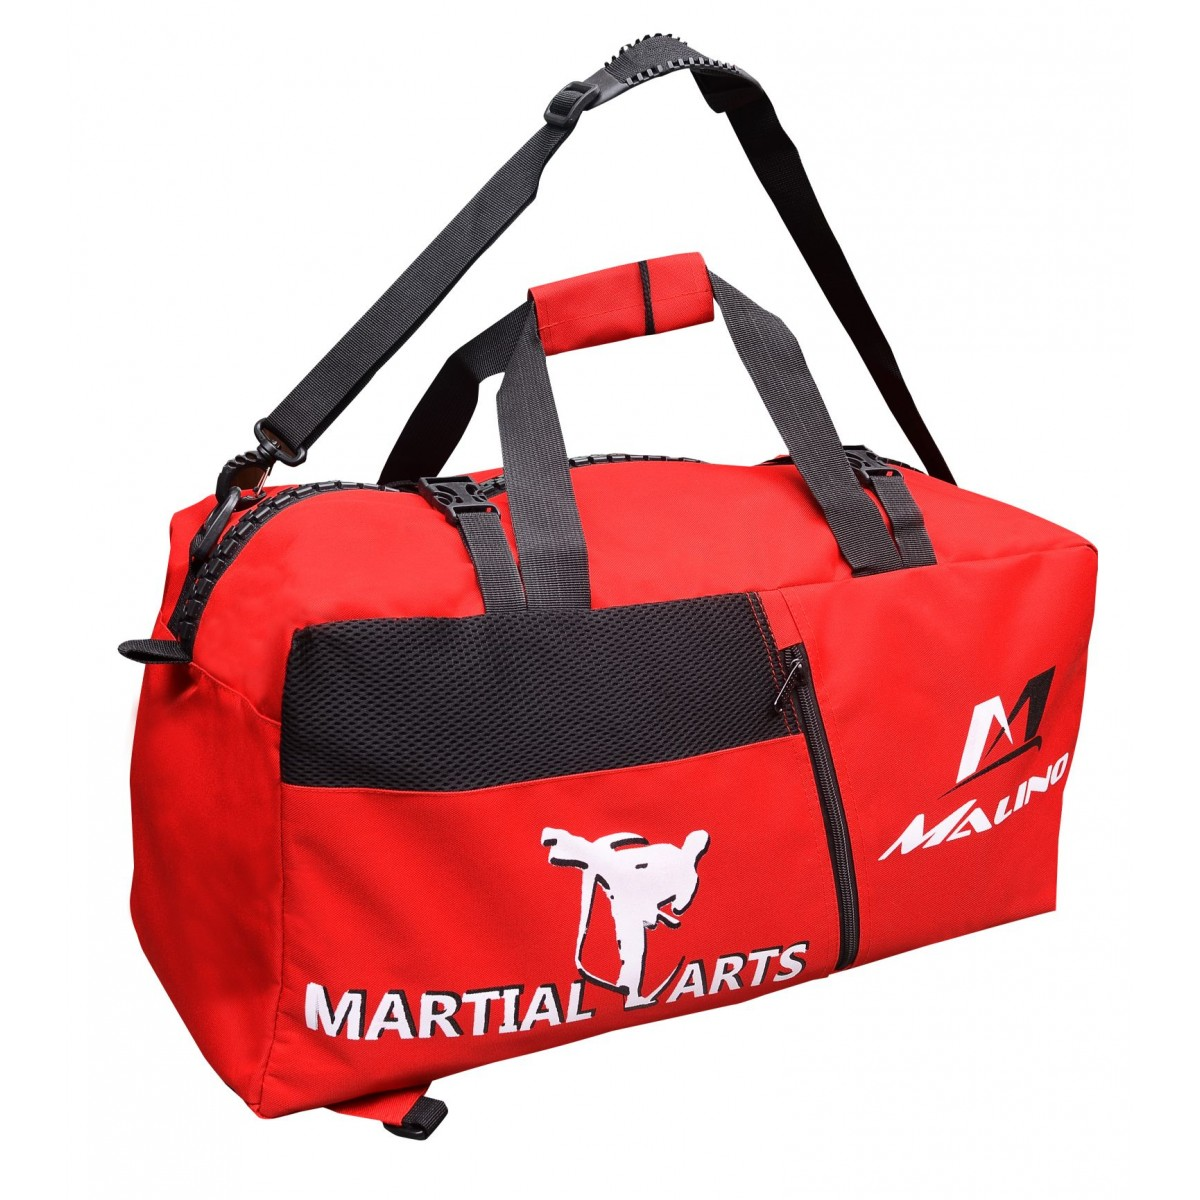 Malino Large Equipment Red Martial Arts Sports Bag